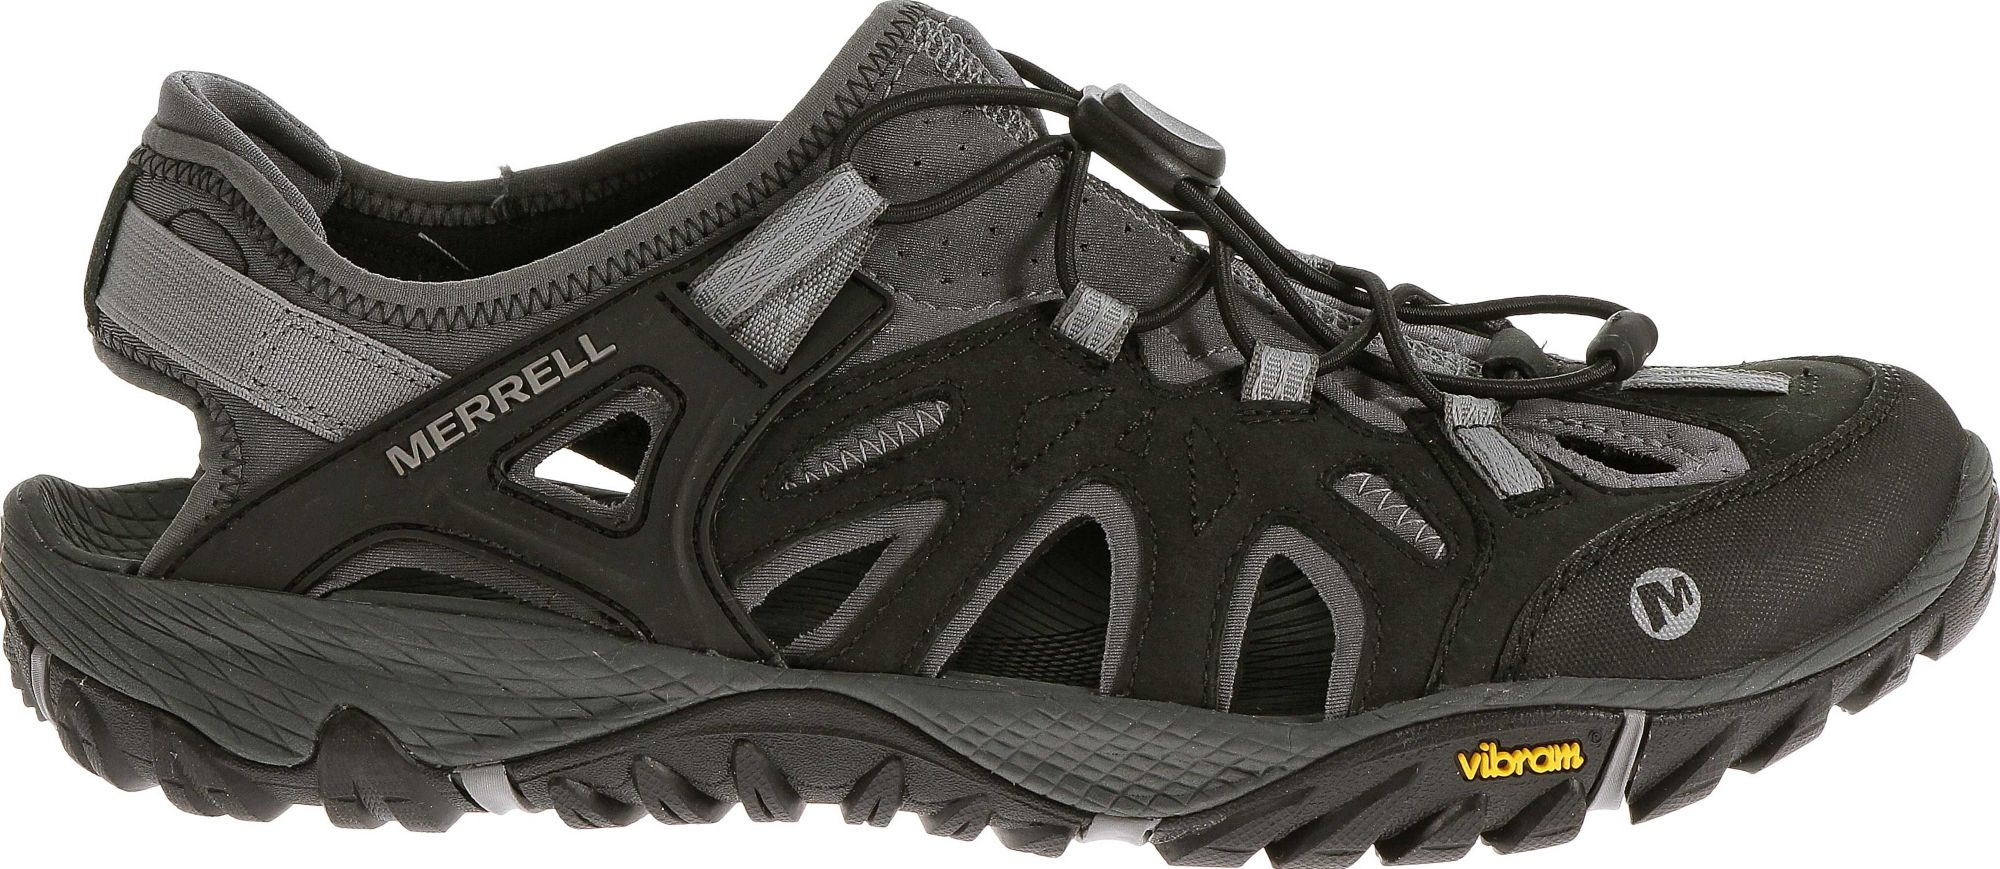 Mens All Out Blaze Sieve Water Shoes Merrell Outlet Fast Delivery Sale Marketable Free Shipping Amazing Price Sale Comfortable With Paypal Online PIPHrqG